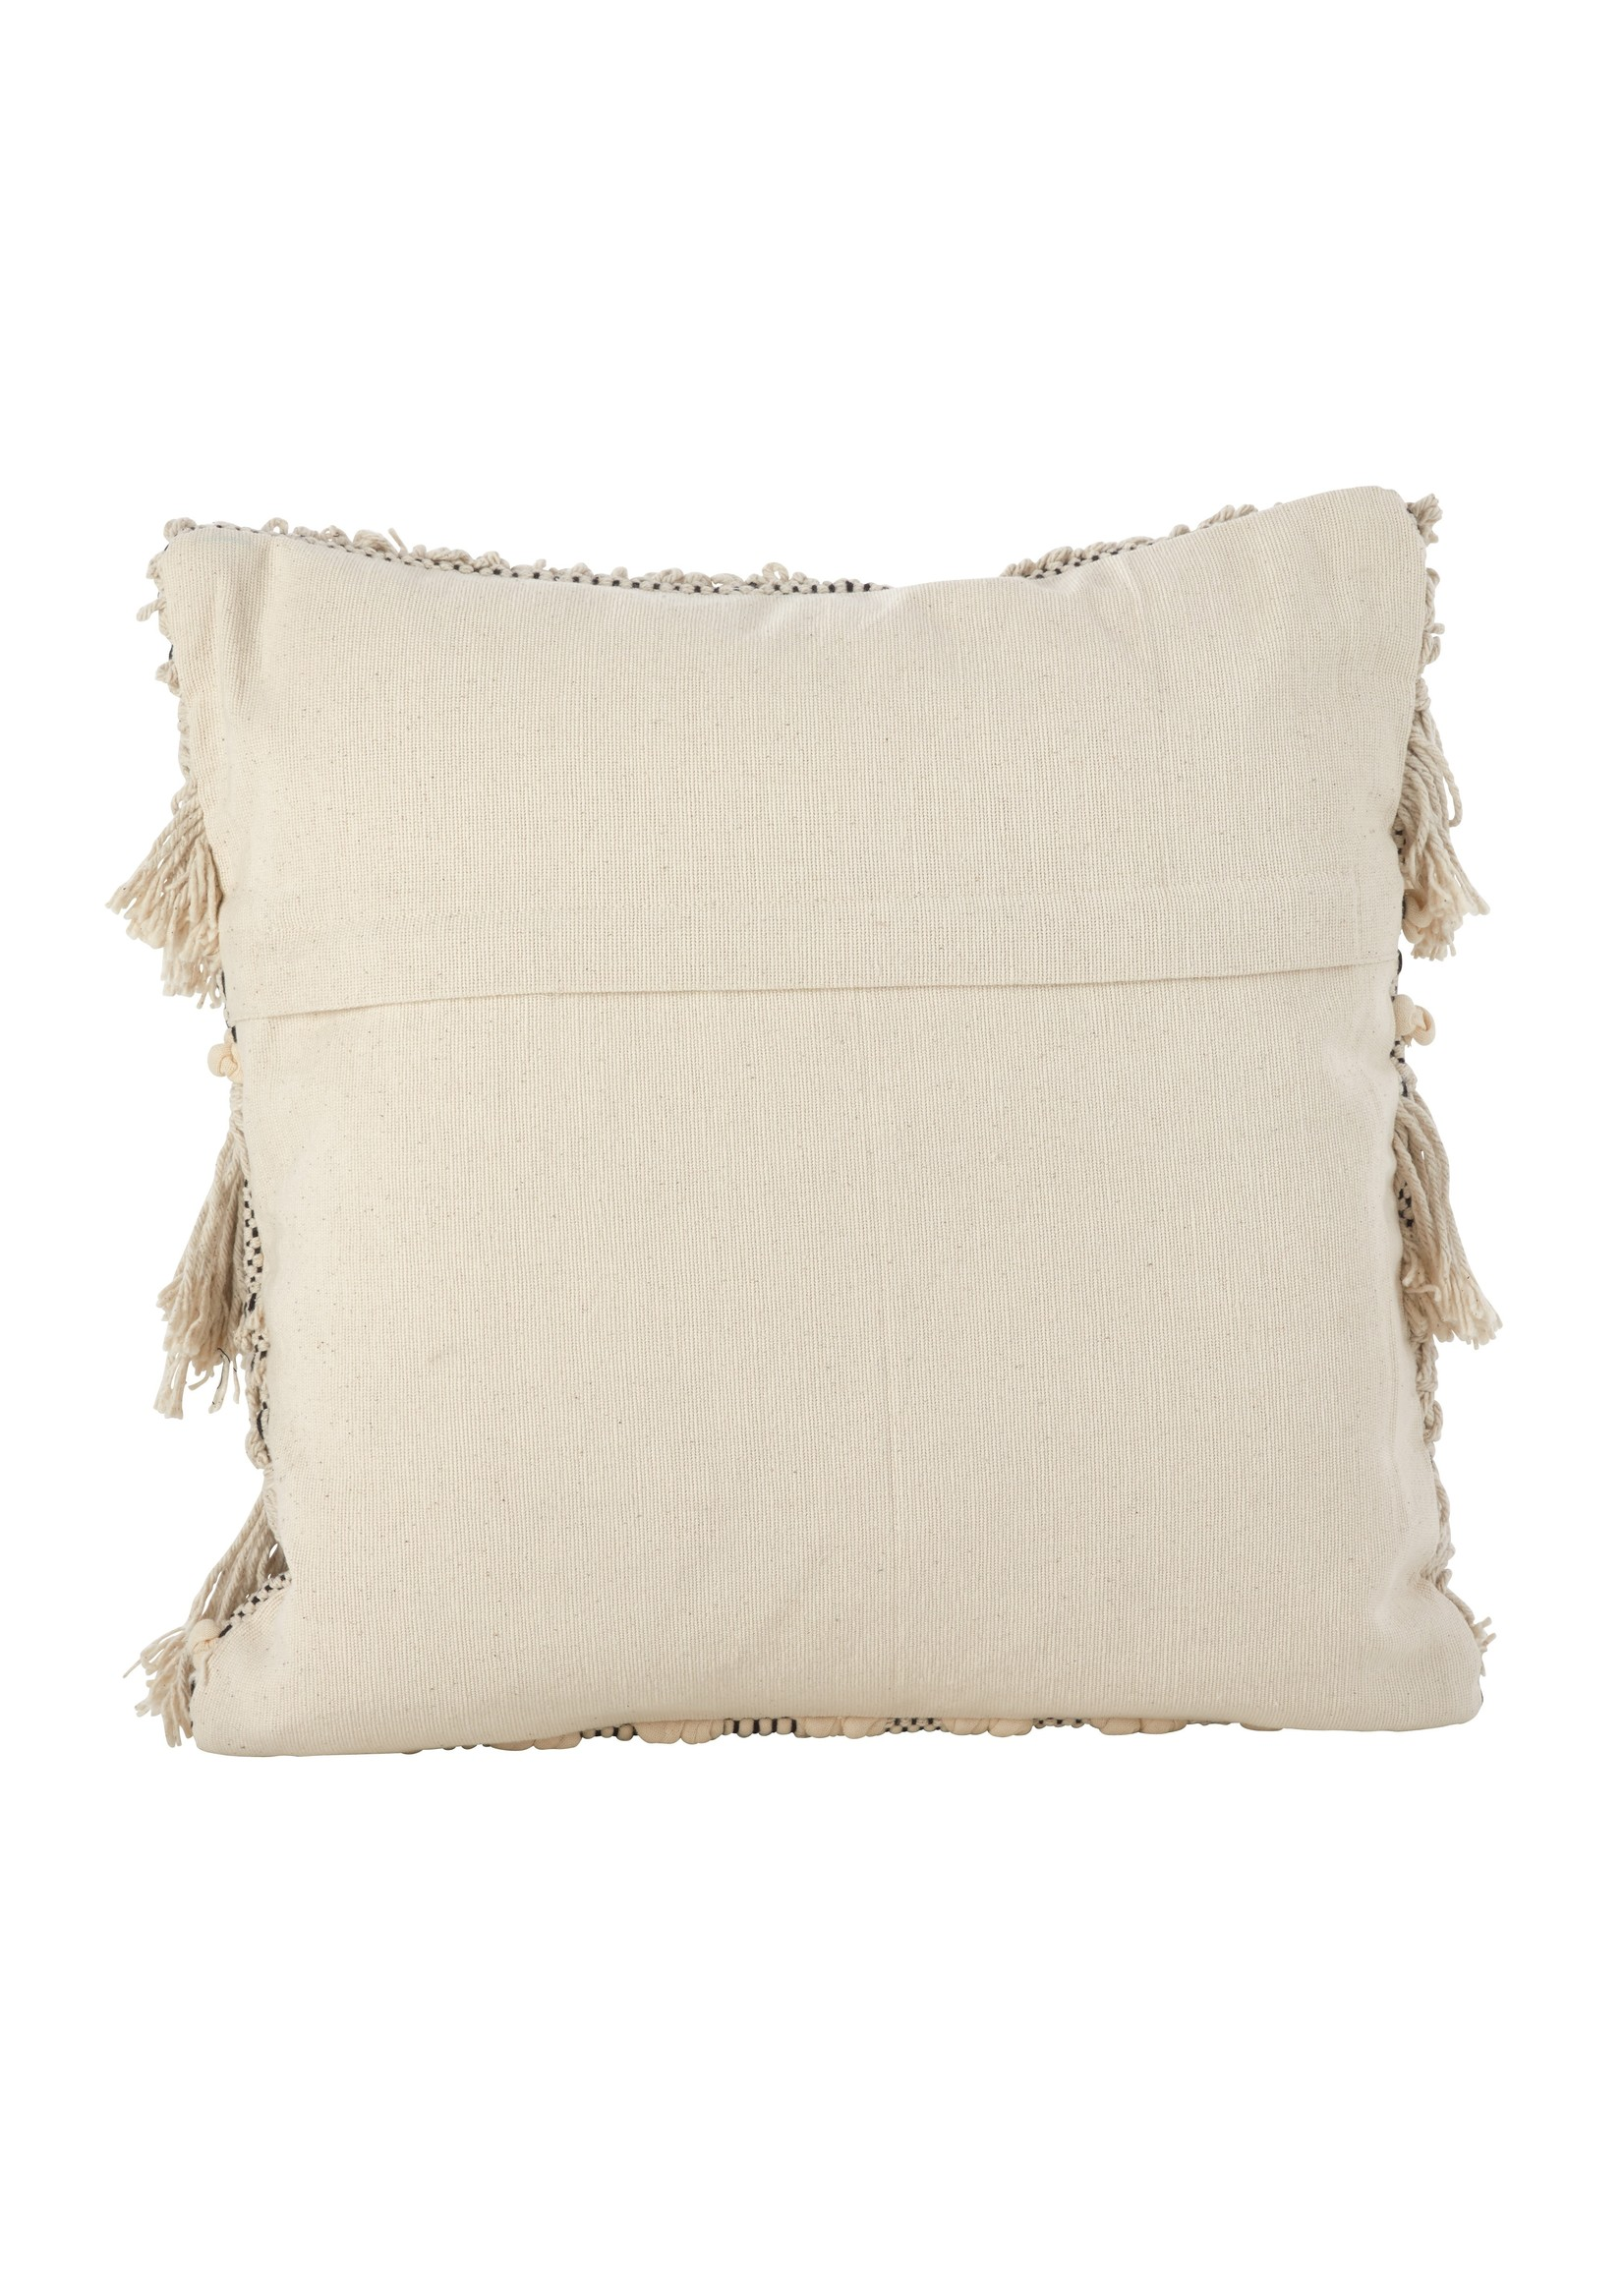 Saro Moroccan Pillow Down Filled - Ivory